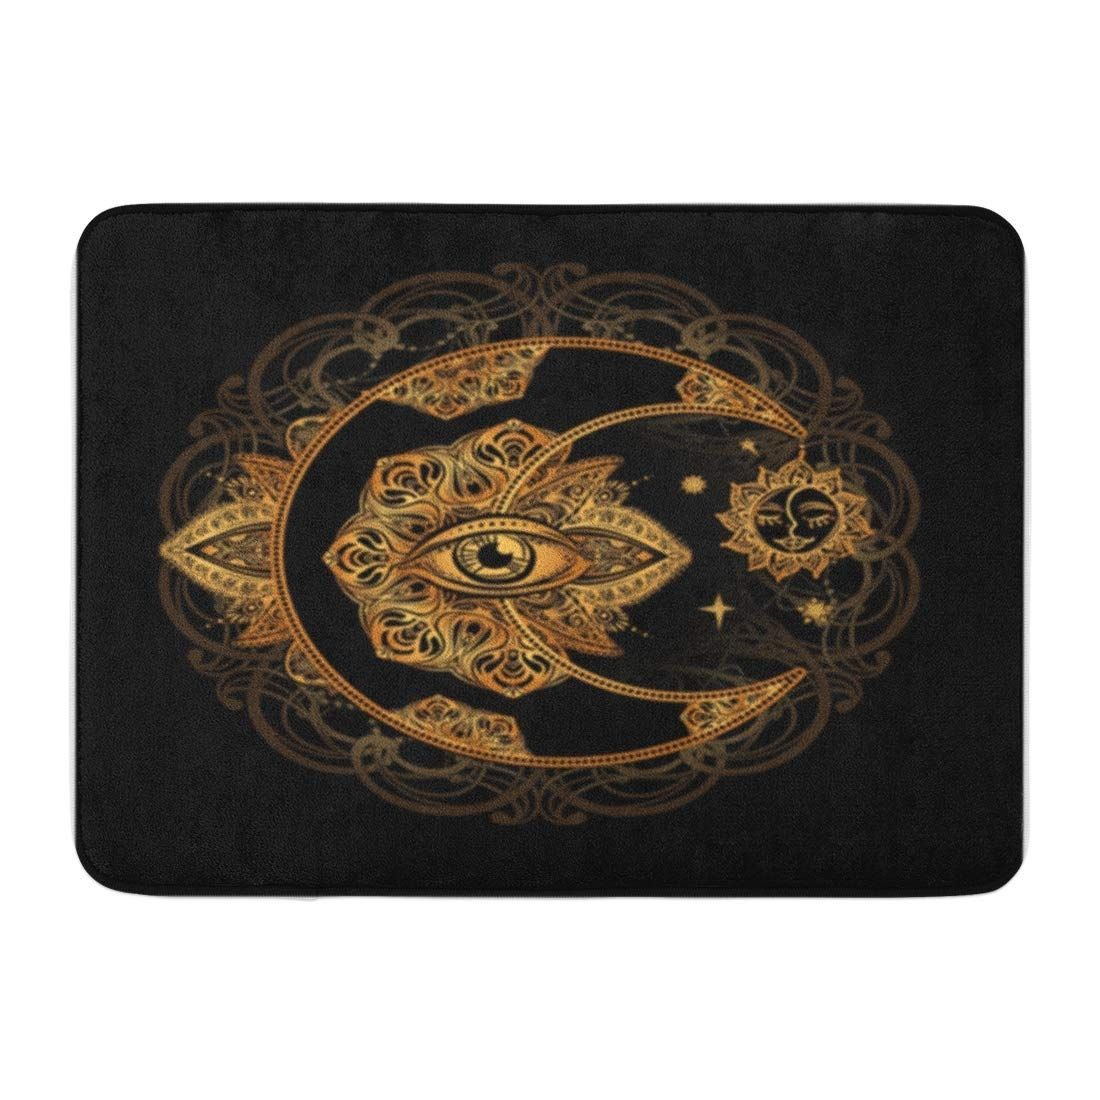 Photo of Boho Chic Tattoo Golden Crescent Moon and Sun Doormat Floor Rug Bath Mat – Products